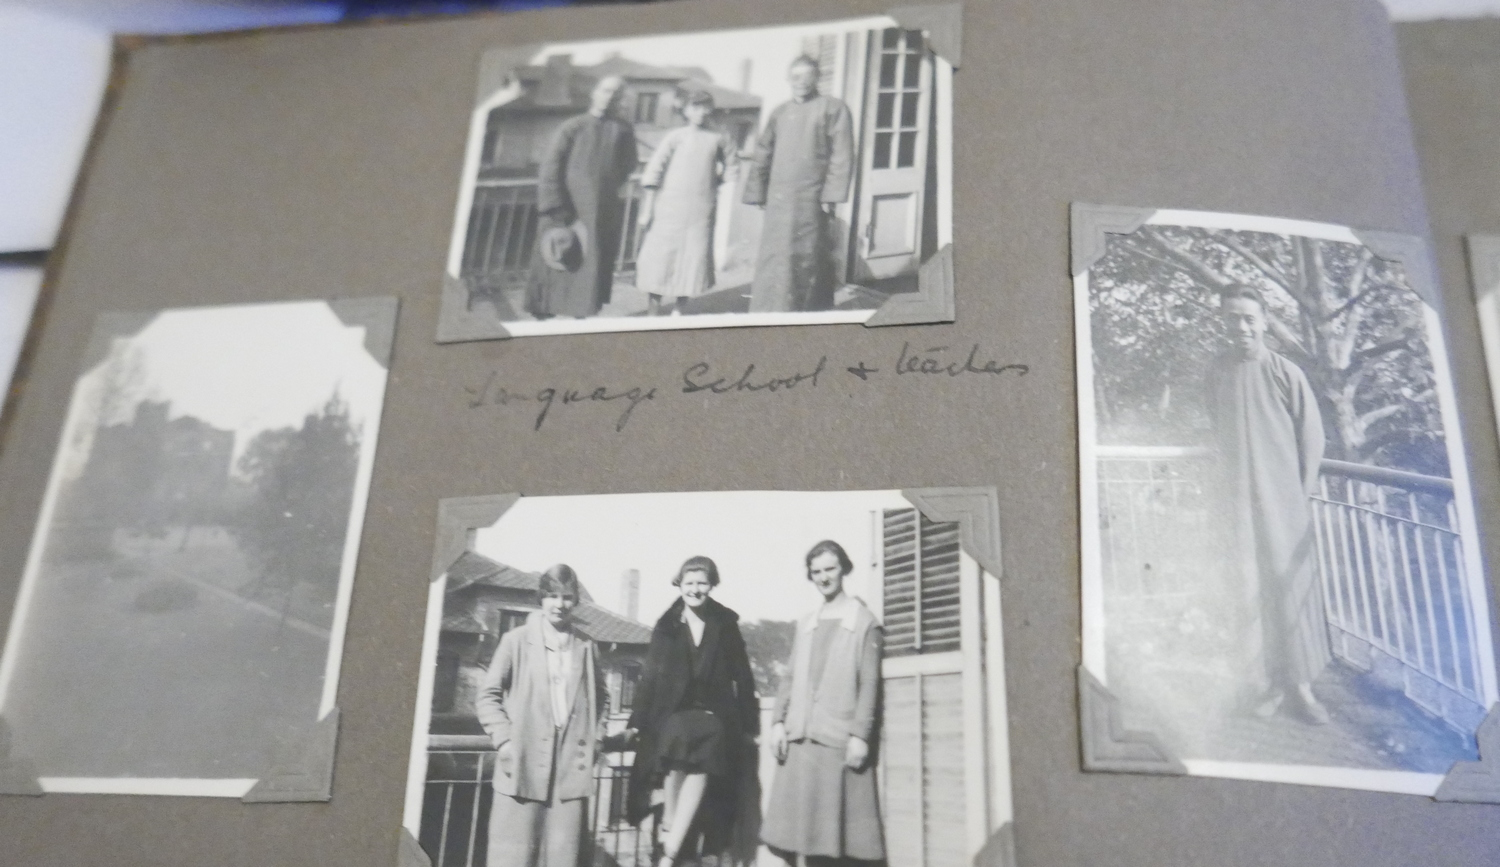 Lot 44 - Album of Photo's of Missionary Family in China - Shangai and Soochow c1930 - approx 60 images-c1930